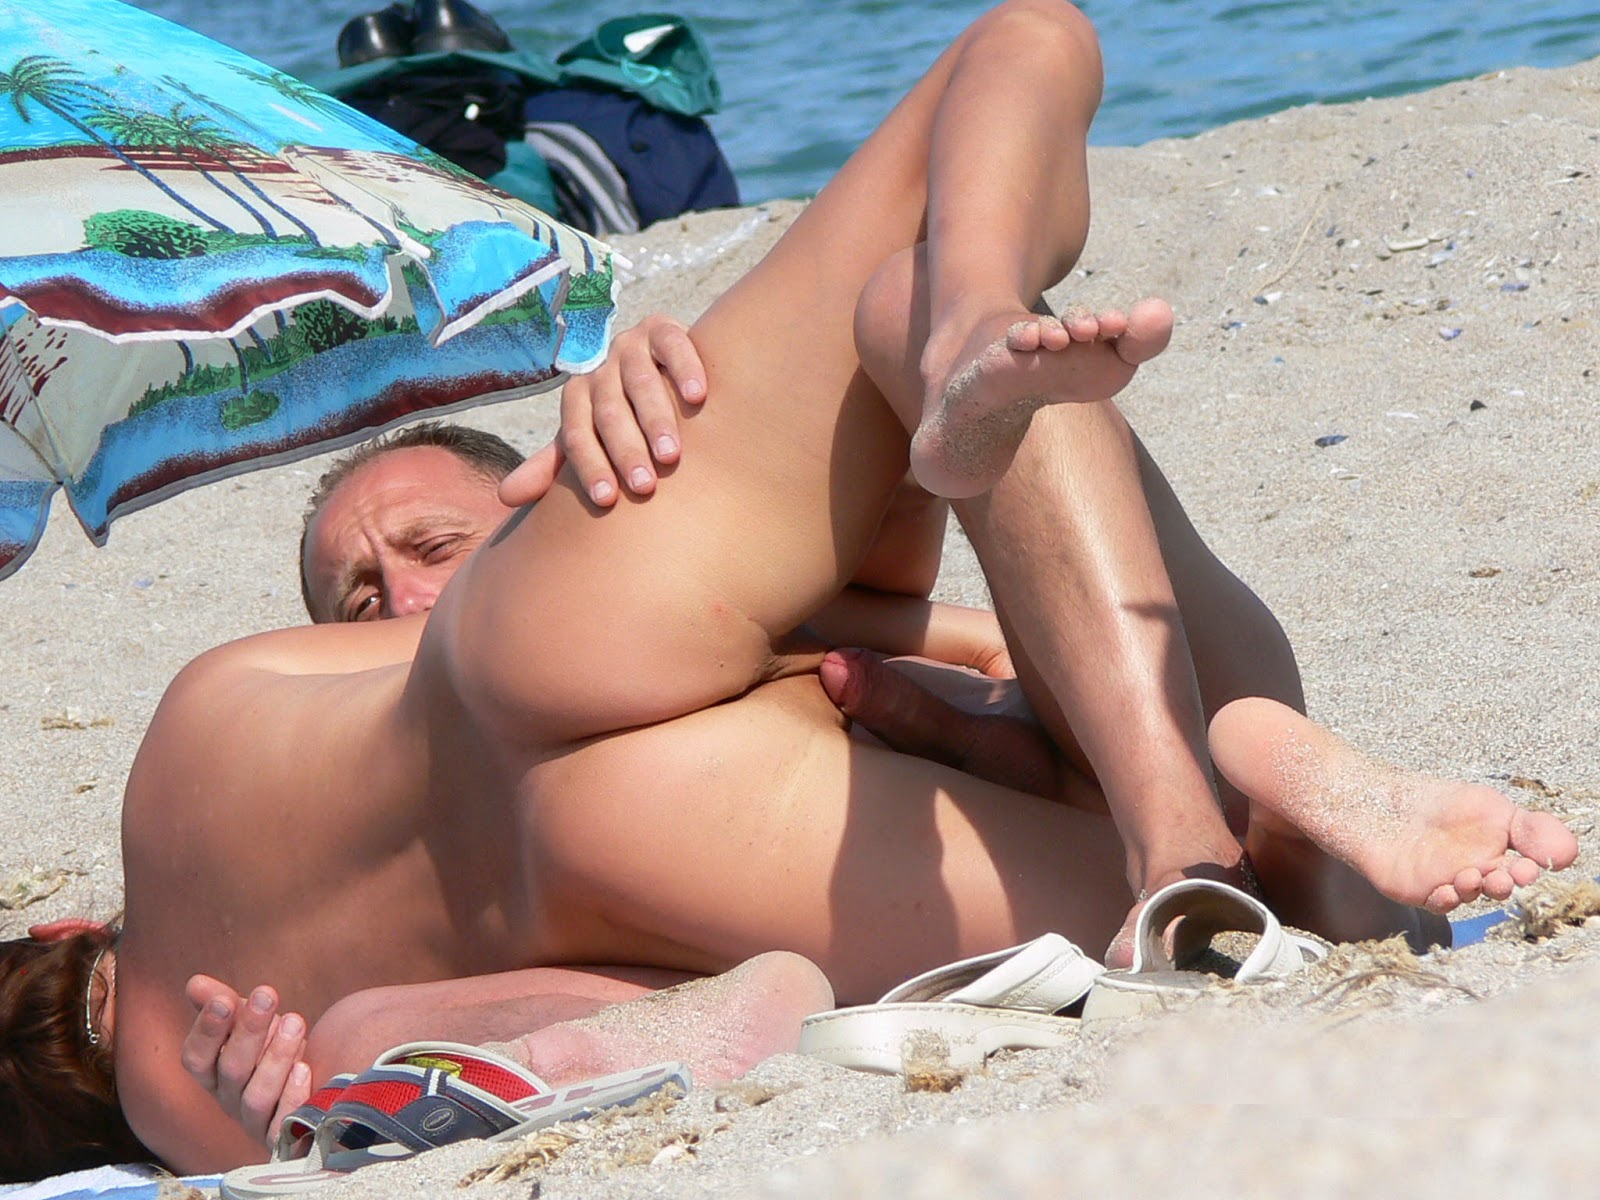 Remarkable, rather Free naked croatian pics